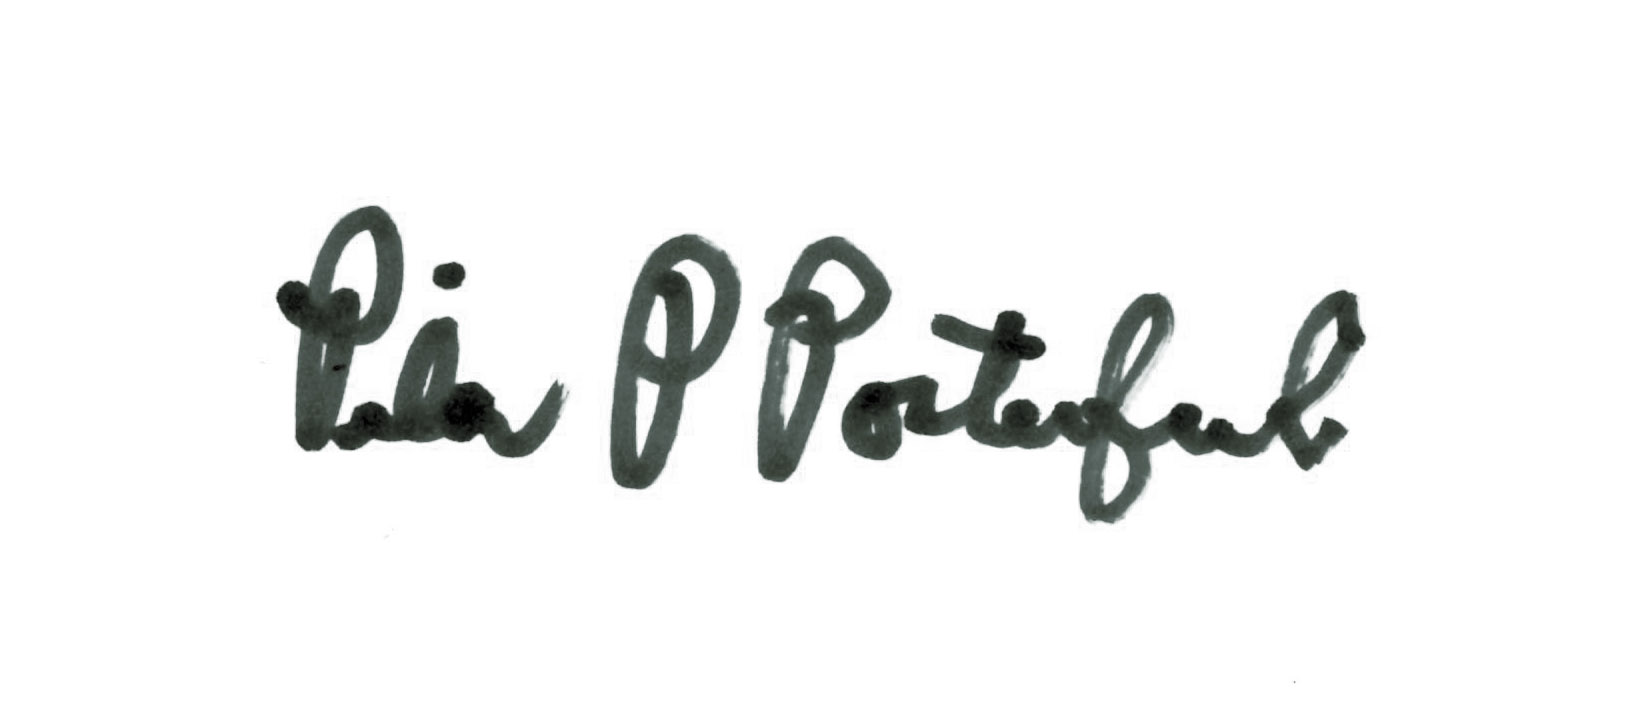 Pilar Porterfield's Signature